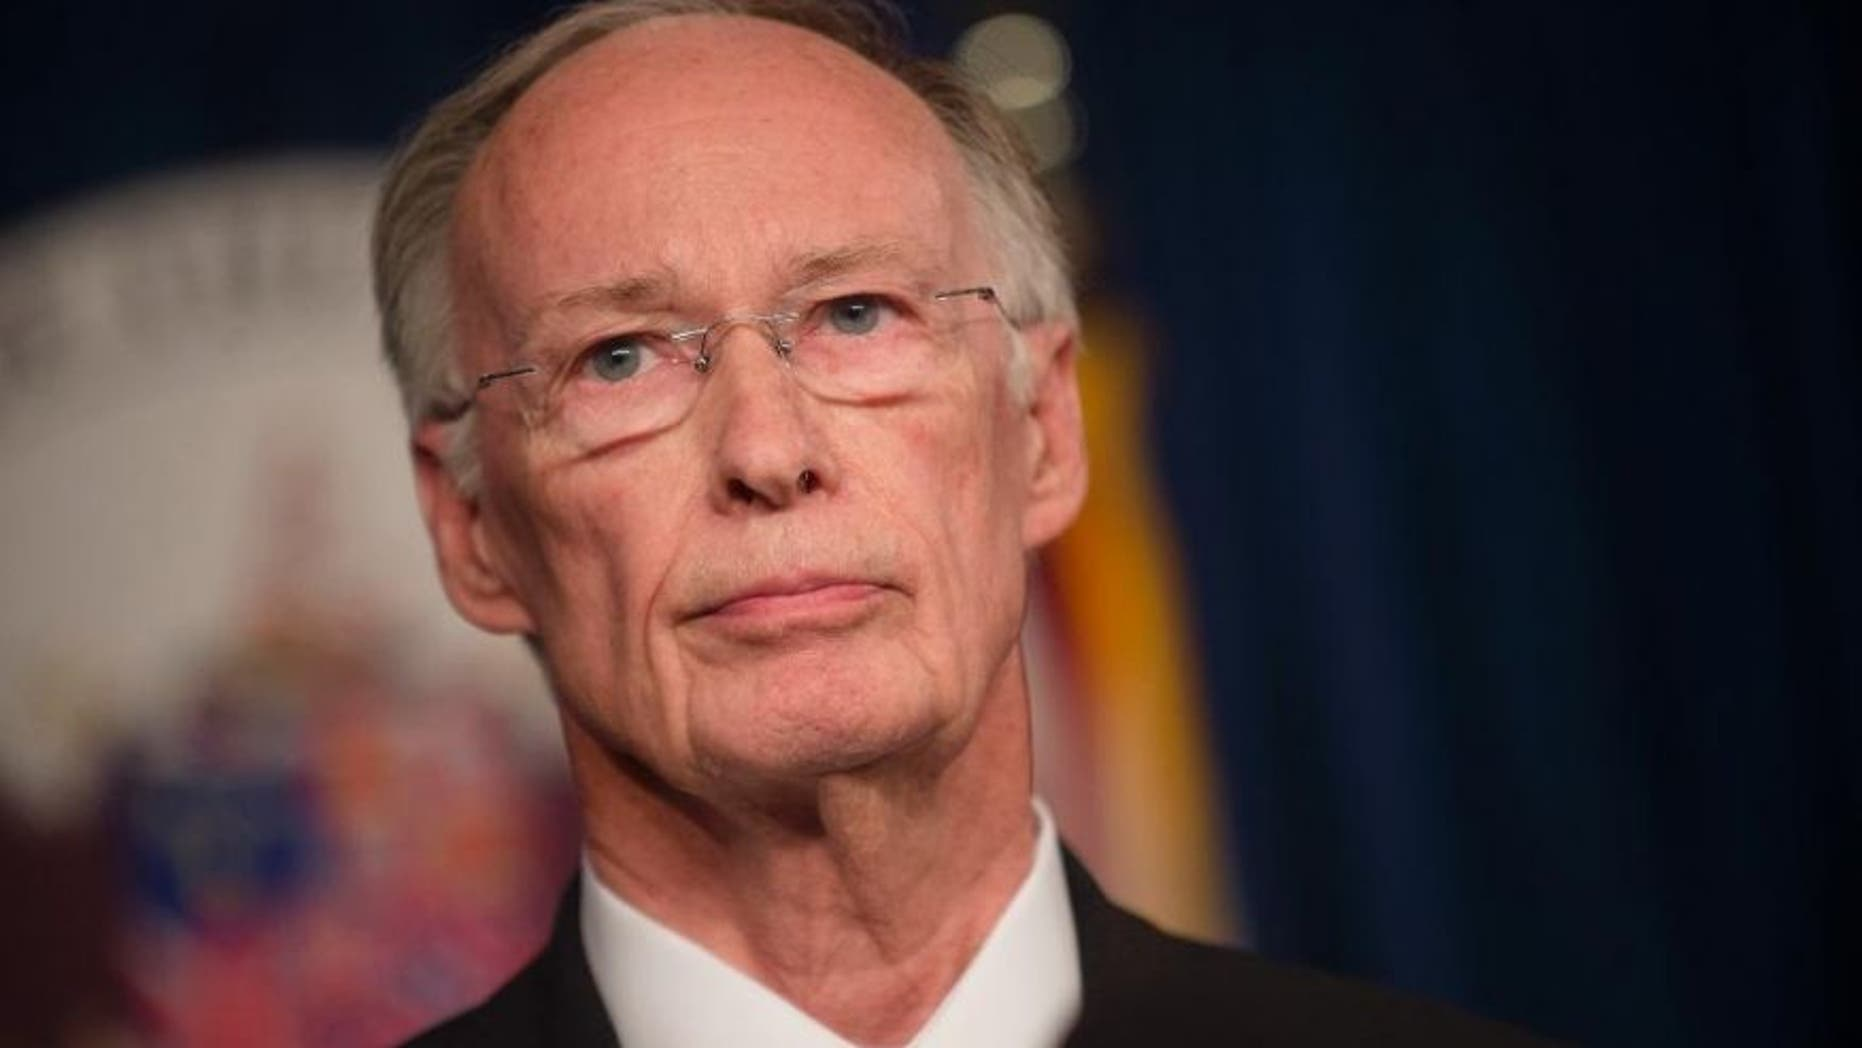 Alabama Gov. Robert Bentley stands during a news conference Wednesday, March 23, 2016, at the state Capitol in Montgomery, Ala.